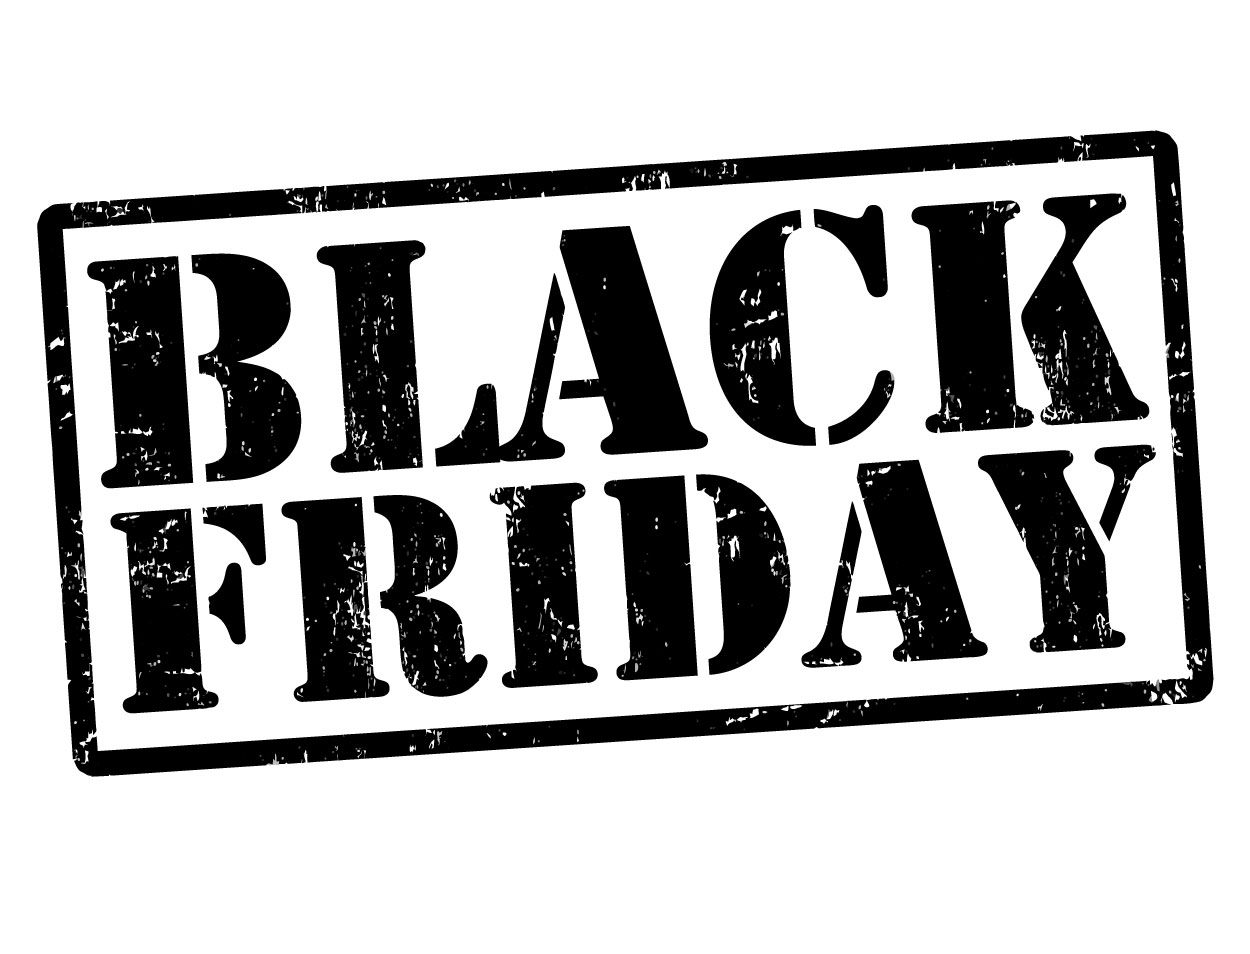 Back Friday Walmart Black Friday Deals Include 299 Ps4 And Xb1 Bundles